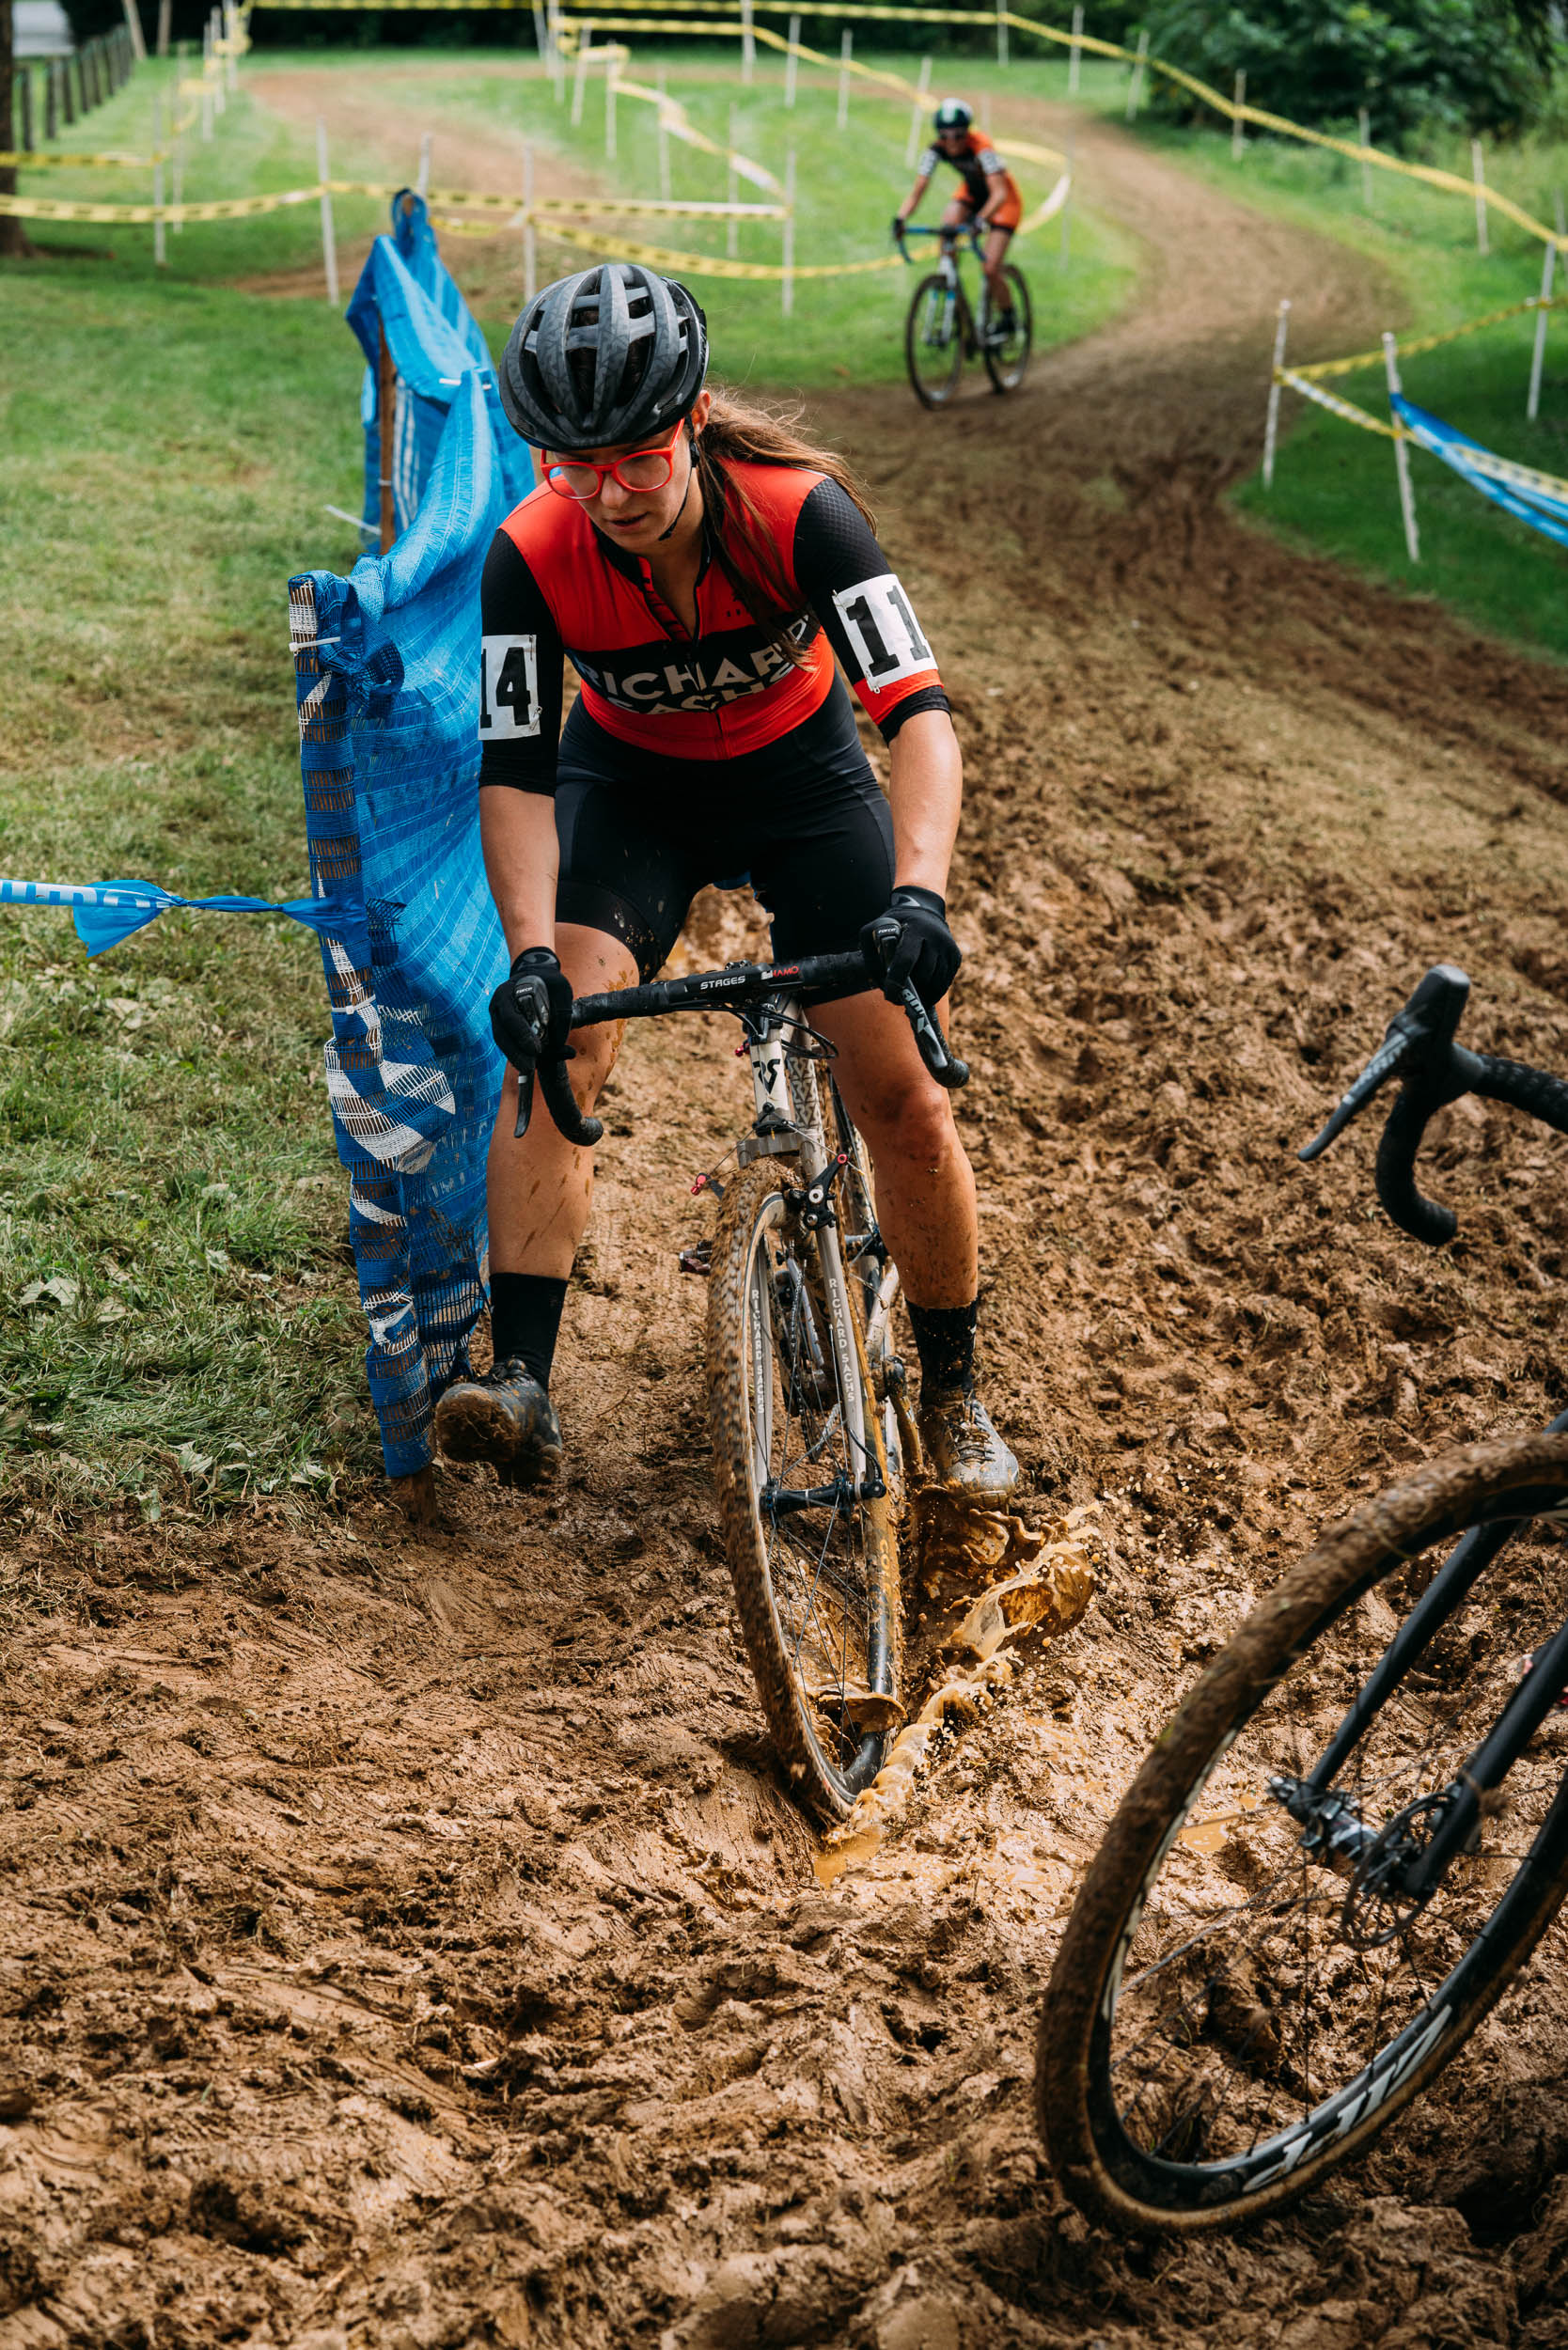 photo-rhetoric-to-be-determined-nittany-cyclocross-1129.jpg